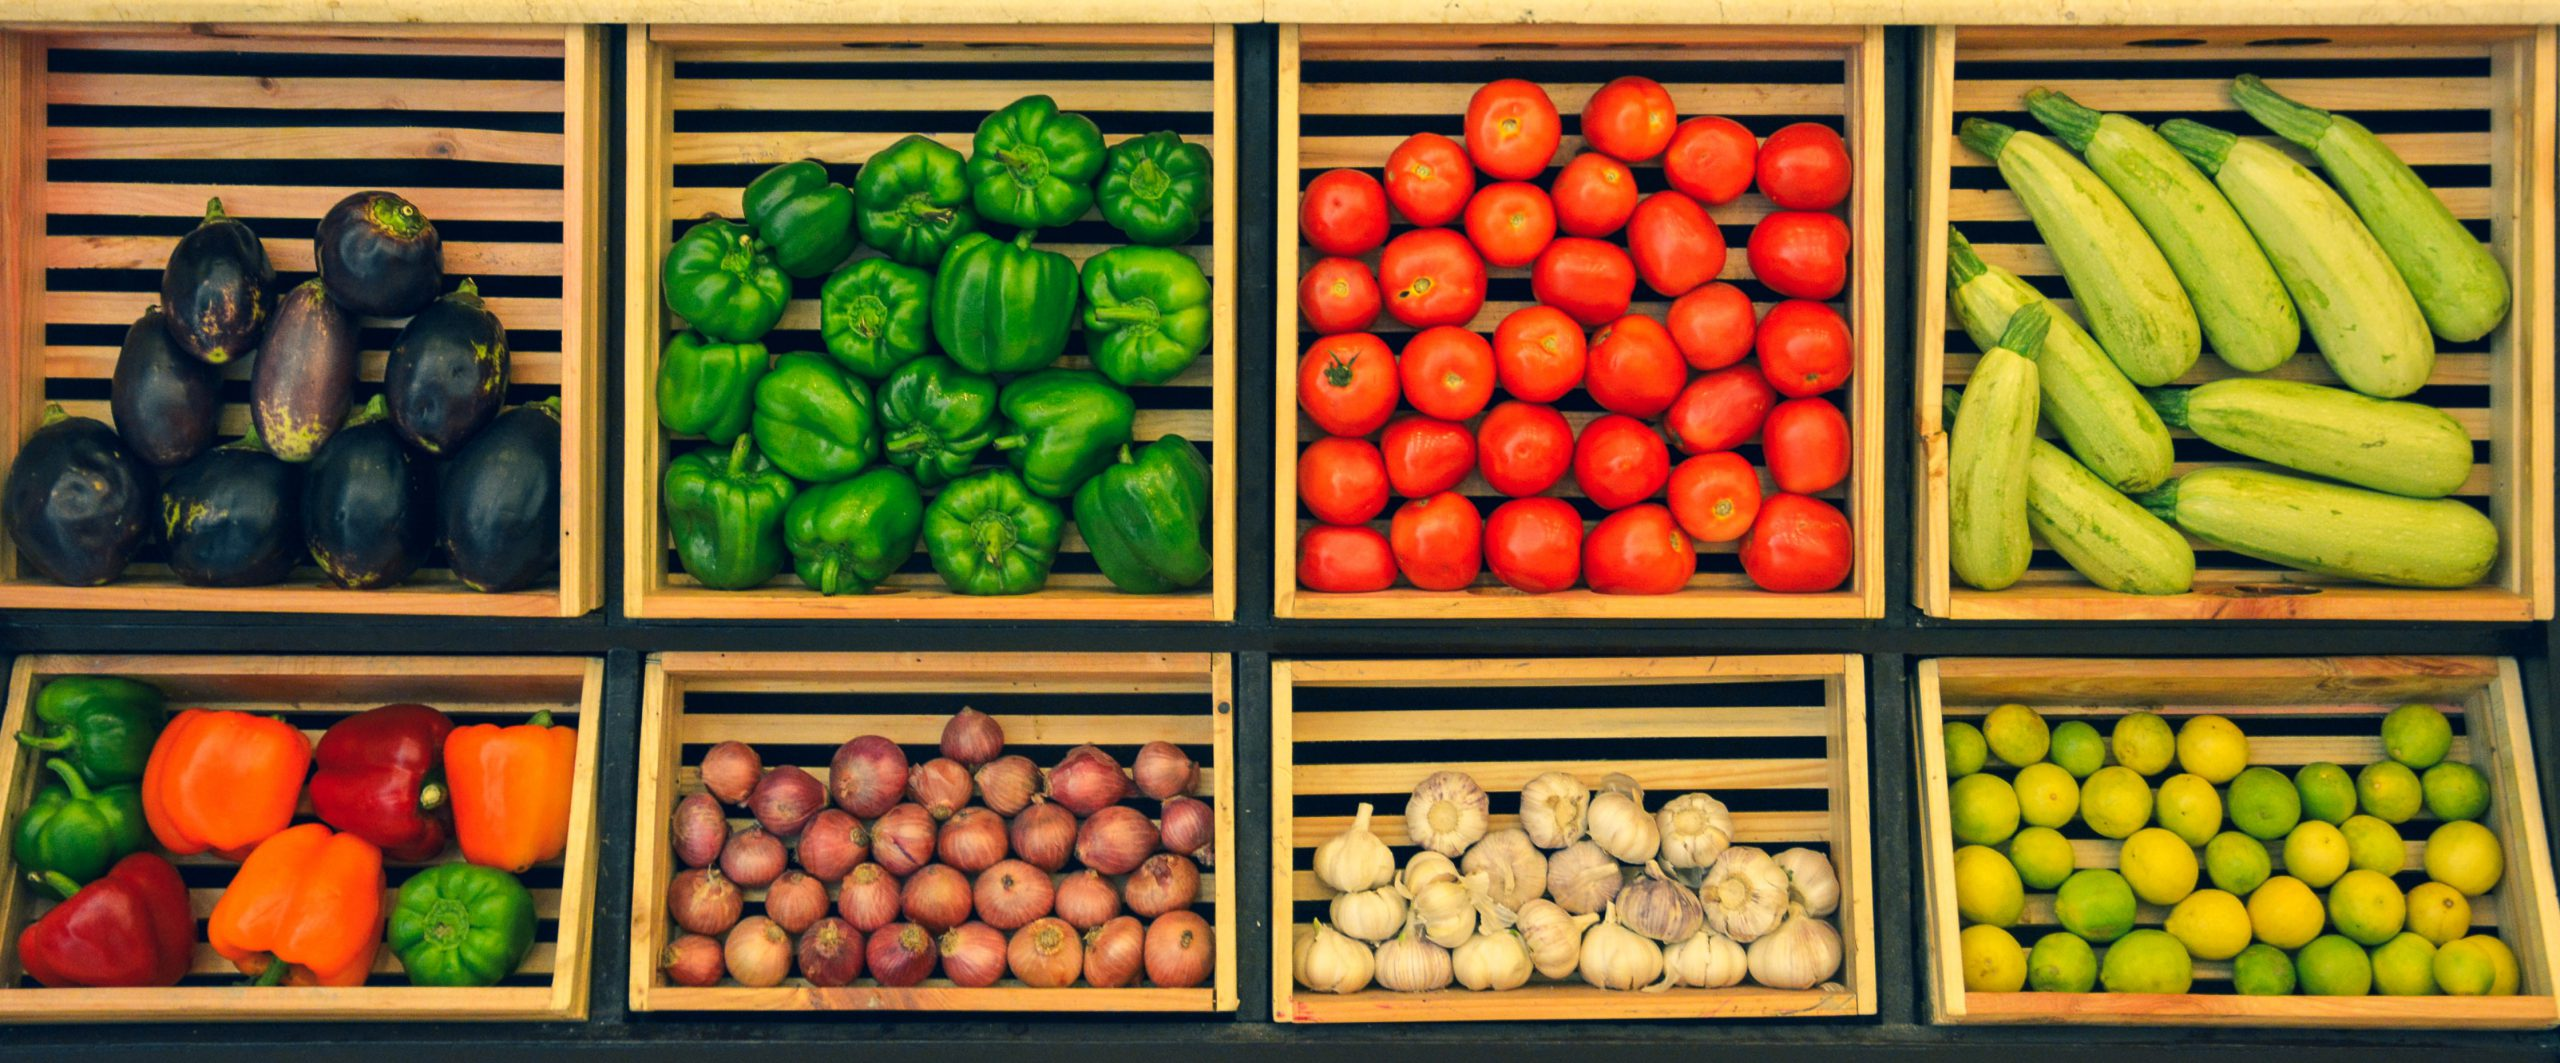 Fresh, Canned, or Frozen: Singing the Praises of Produce